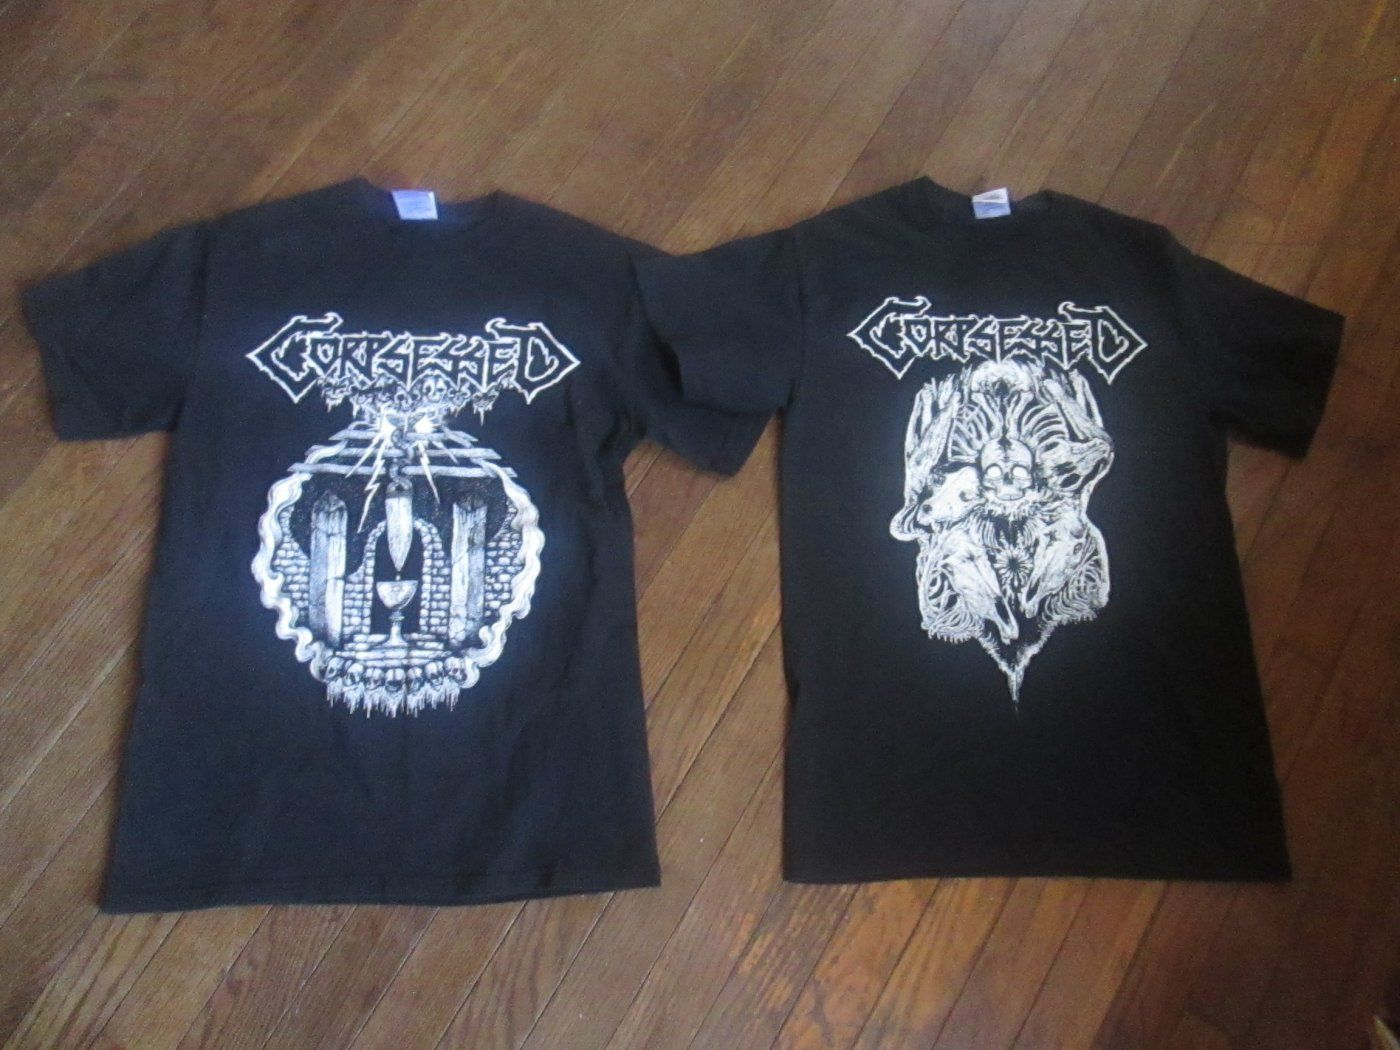 2 CORPSESSED Finnish Death Metal Band Black T-shirts Mens Size Small